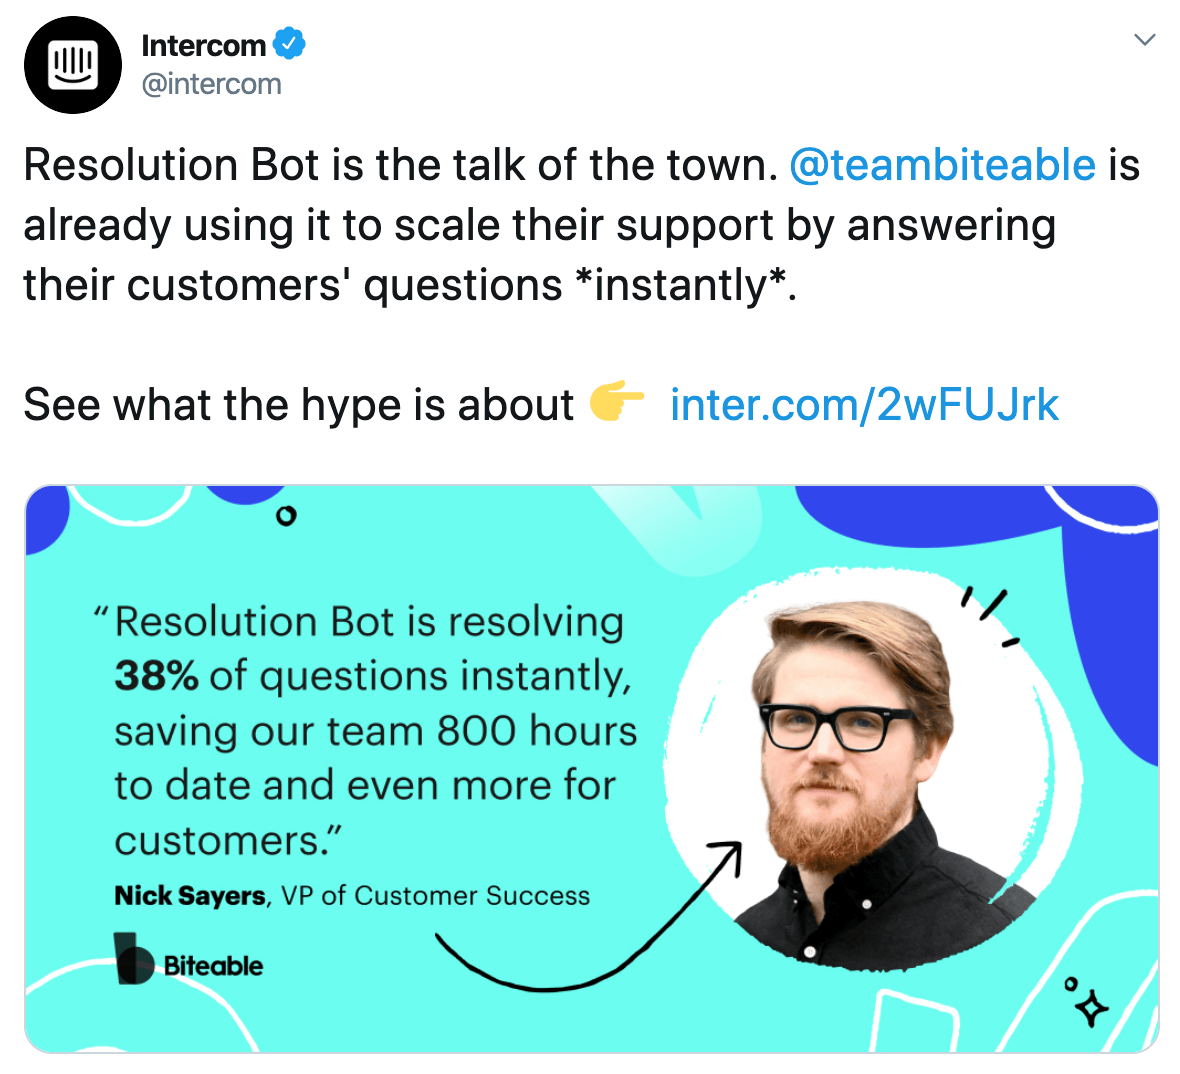 Intercom post on Twitter about Resolution Bot's positive impact